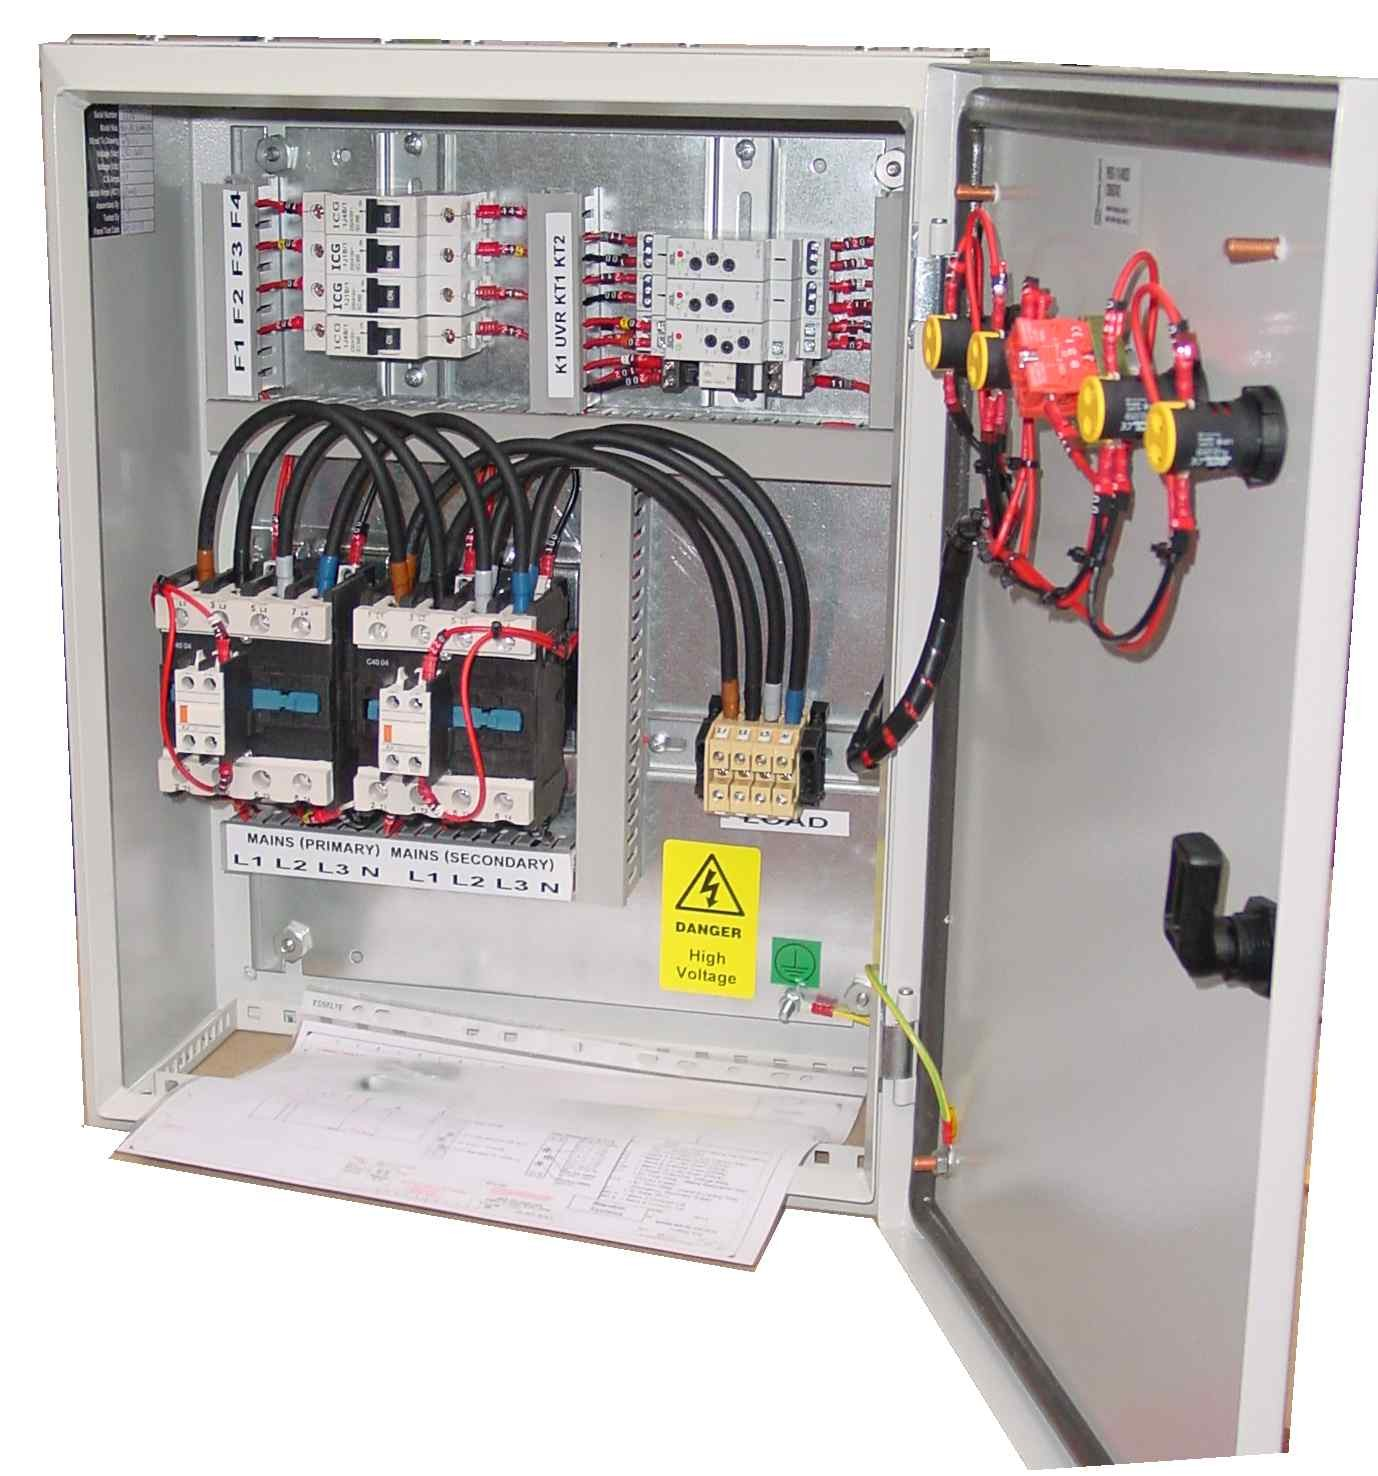 Ats 3 Phase Mains Mains Icg Contactors 40 1000a 783 on 3 pole switch diagram